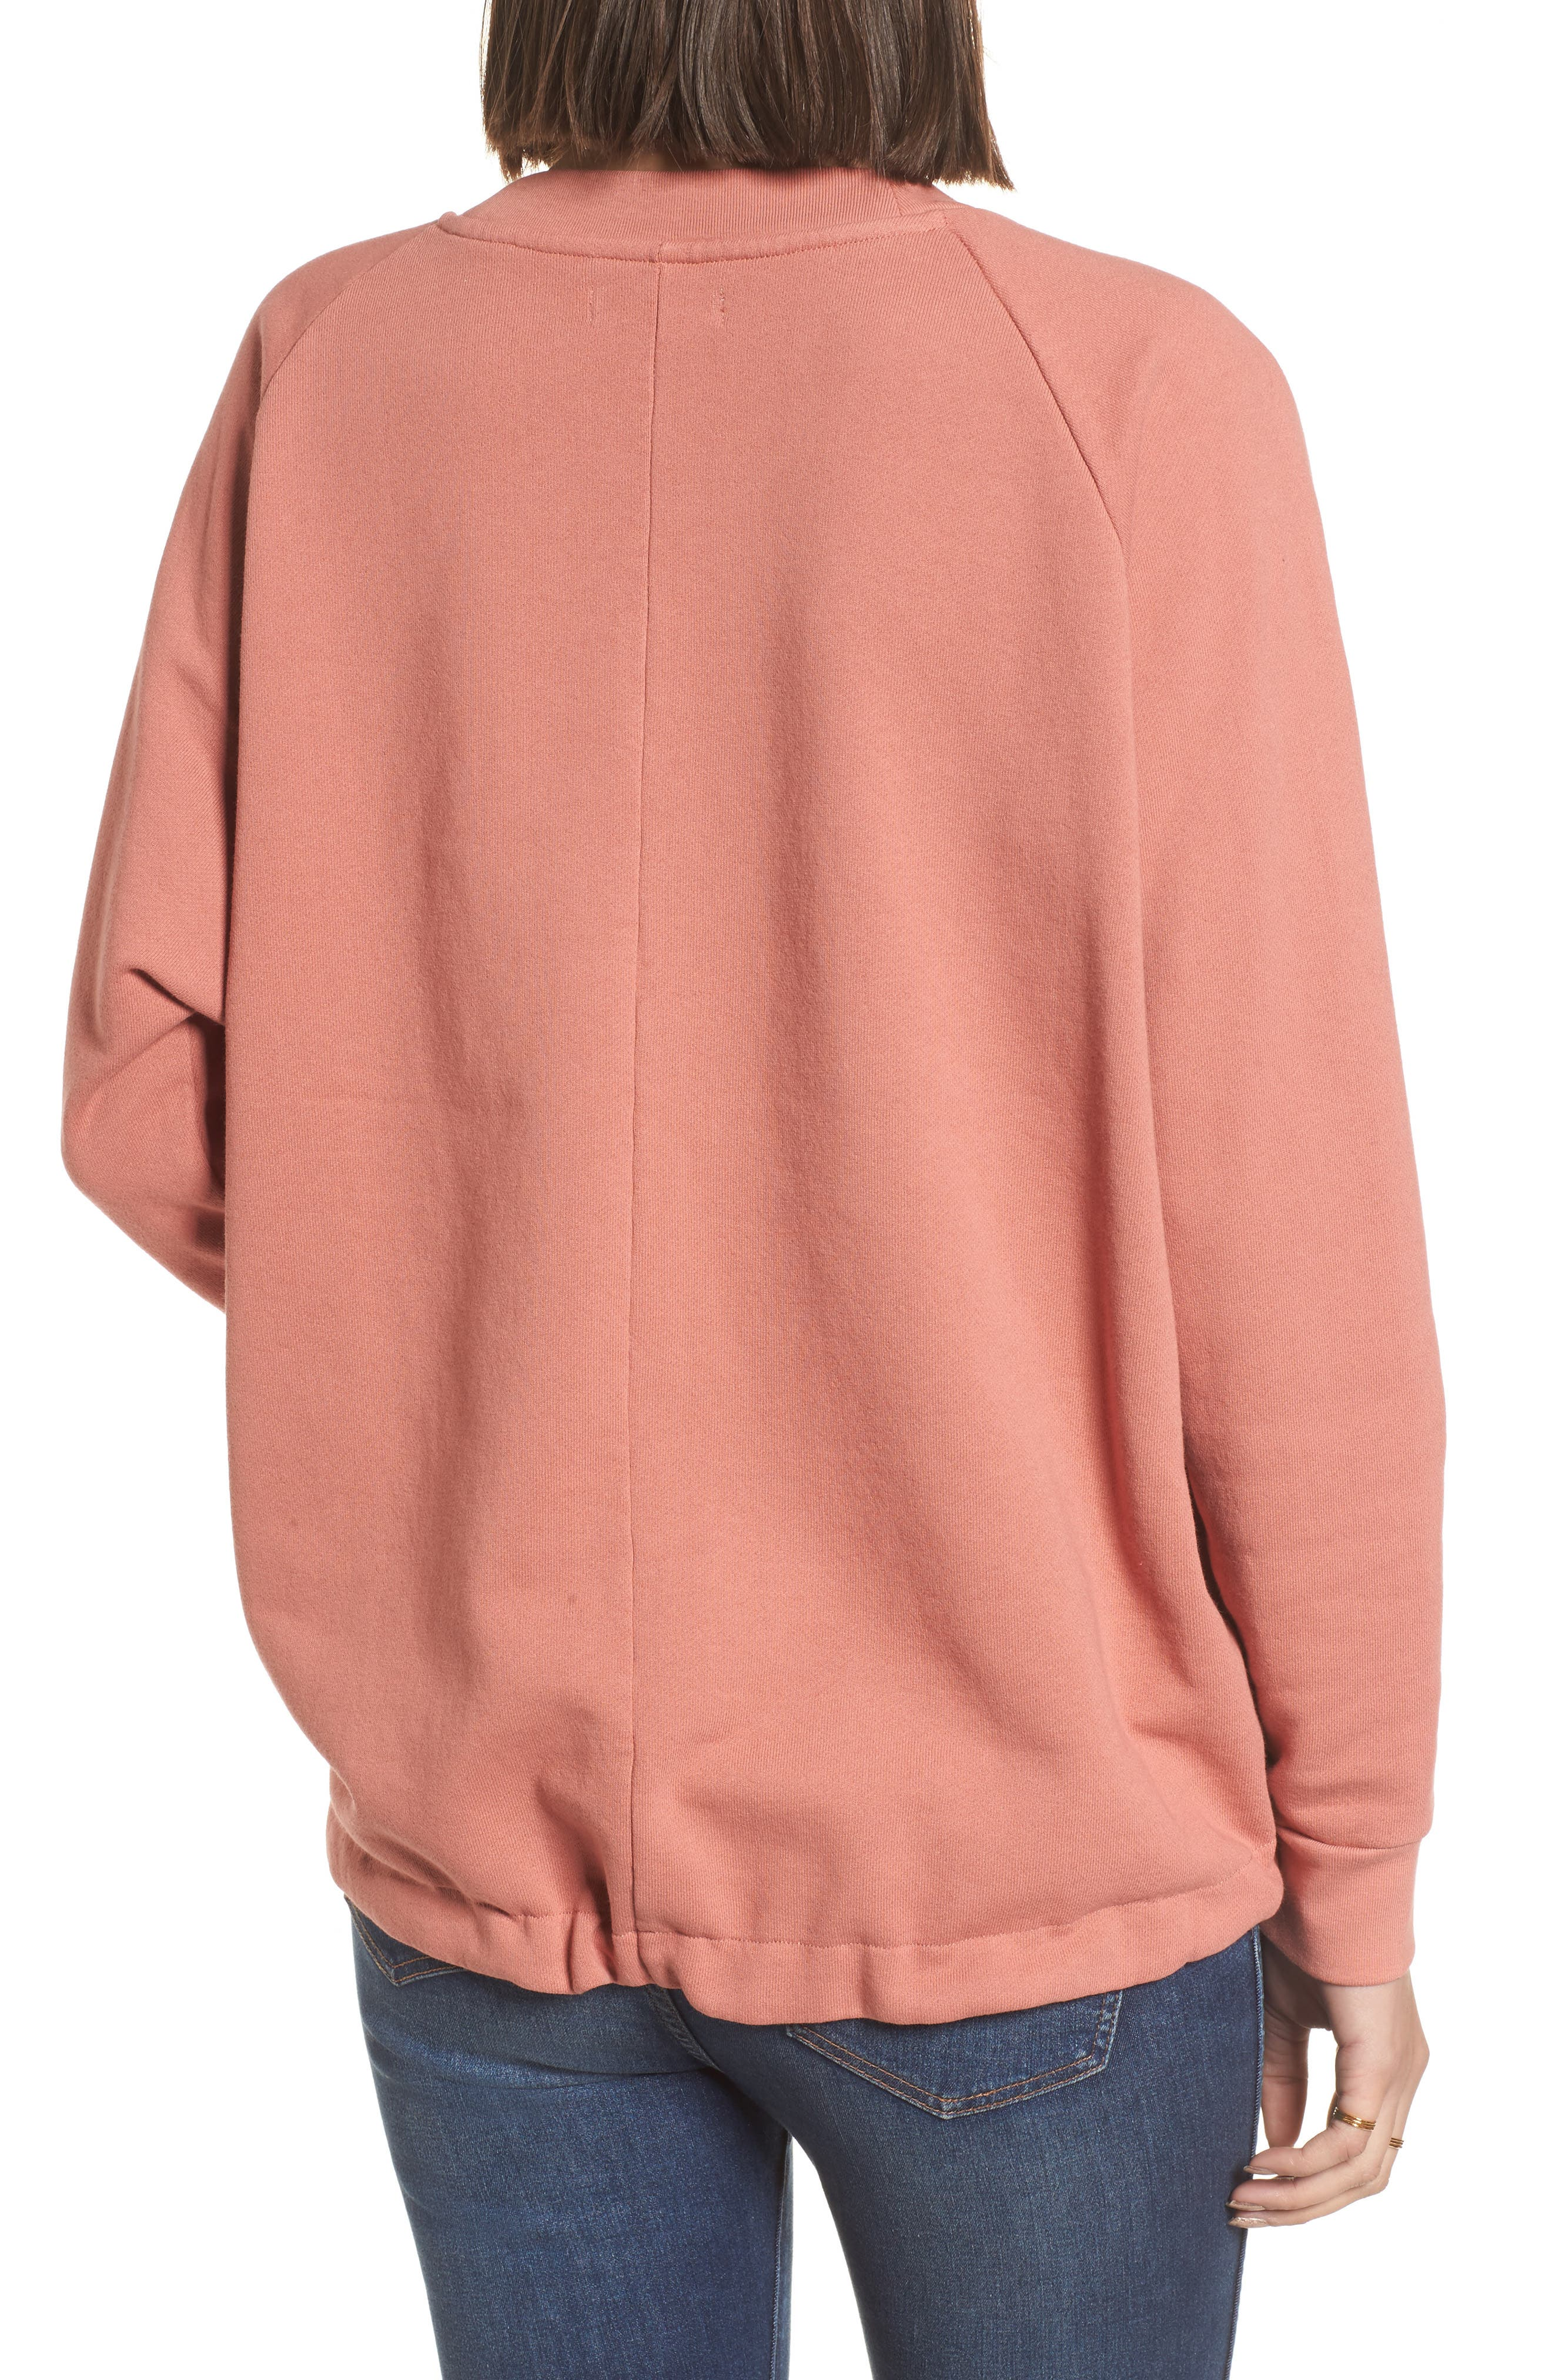 Drawstring Sweatshirt,                             Alternate thumbnail 4, color,